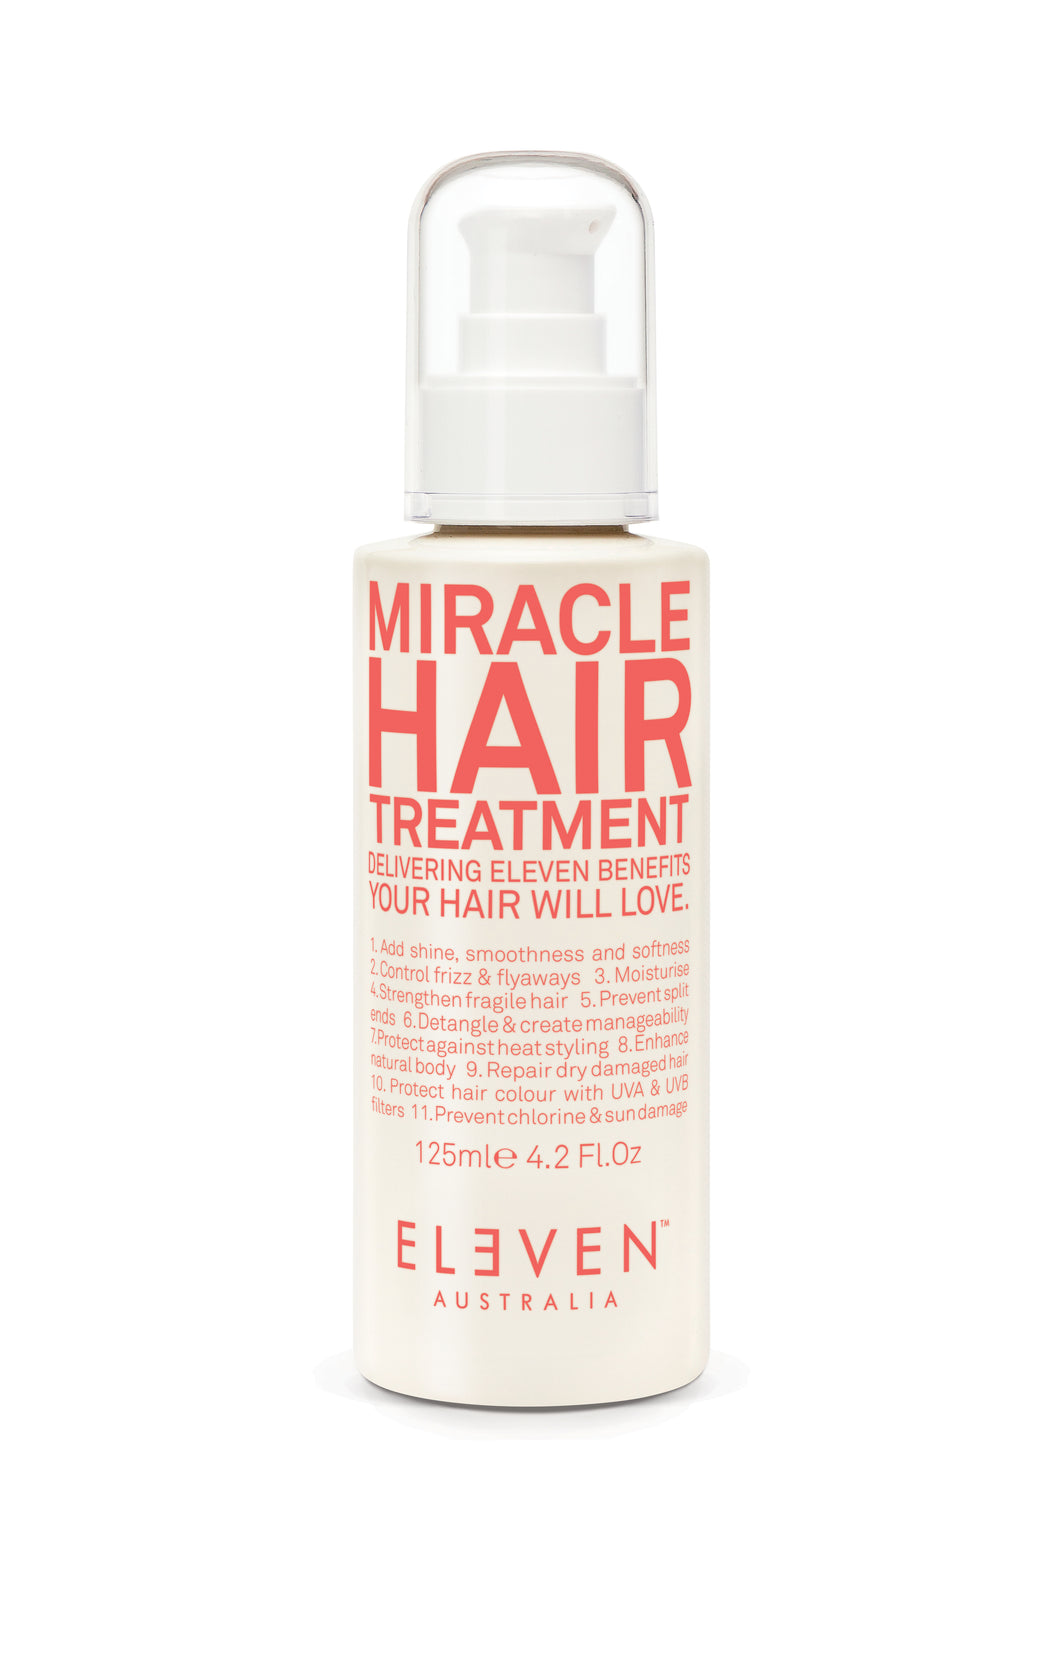 ELEVEN Miracle Hair Treatment 125ml